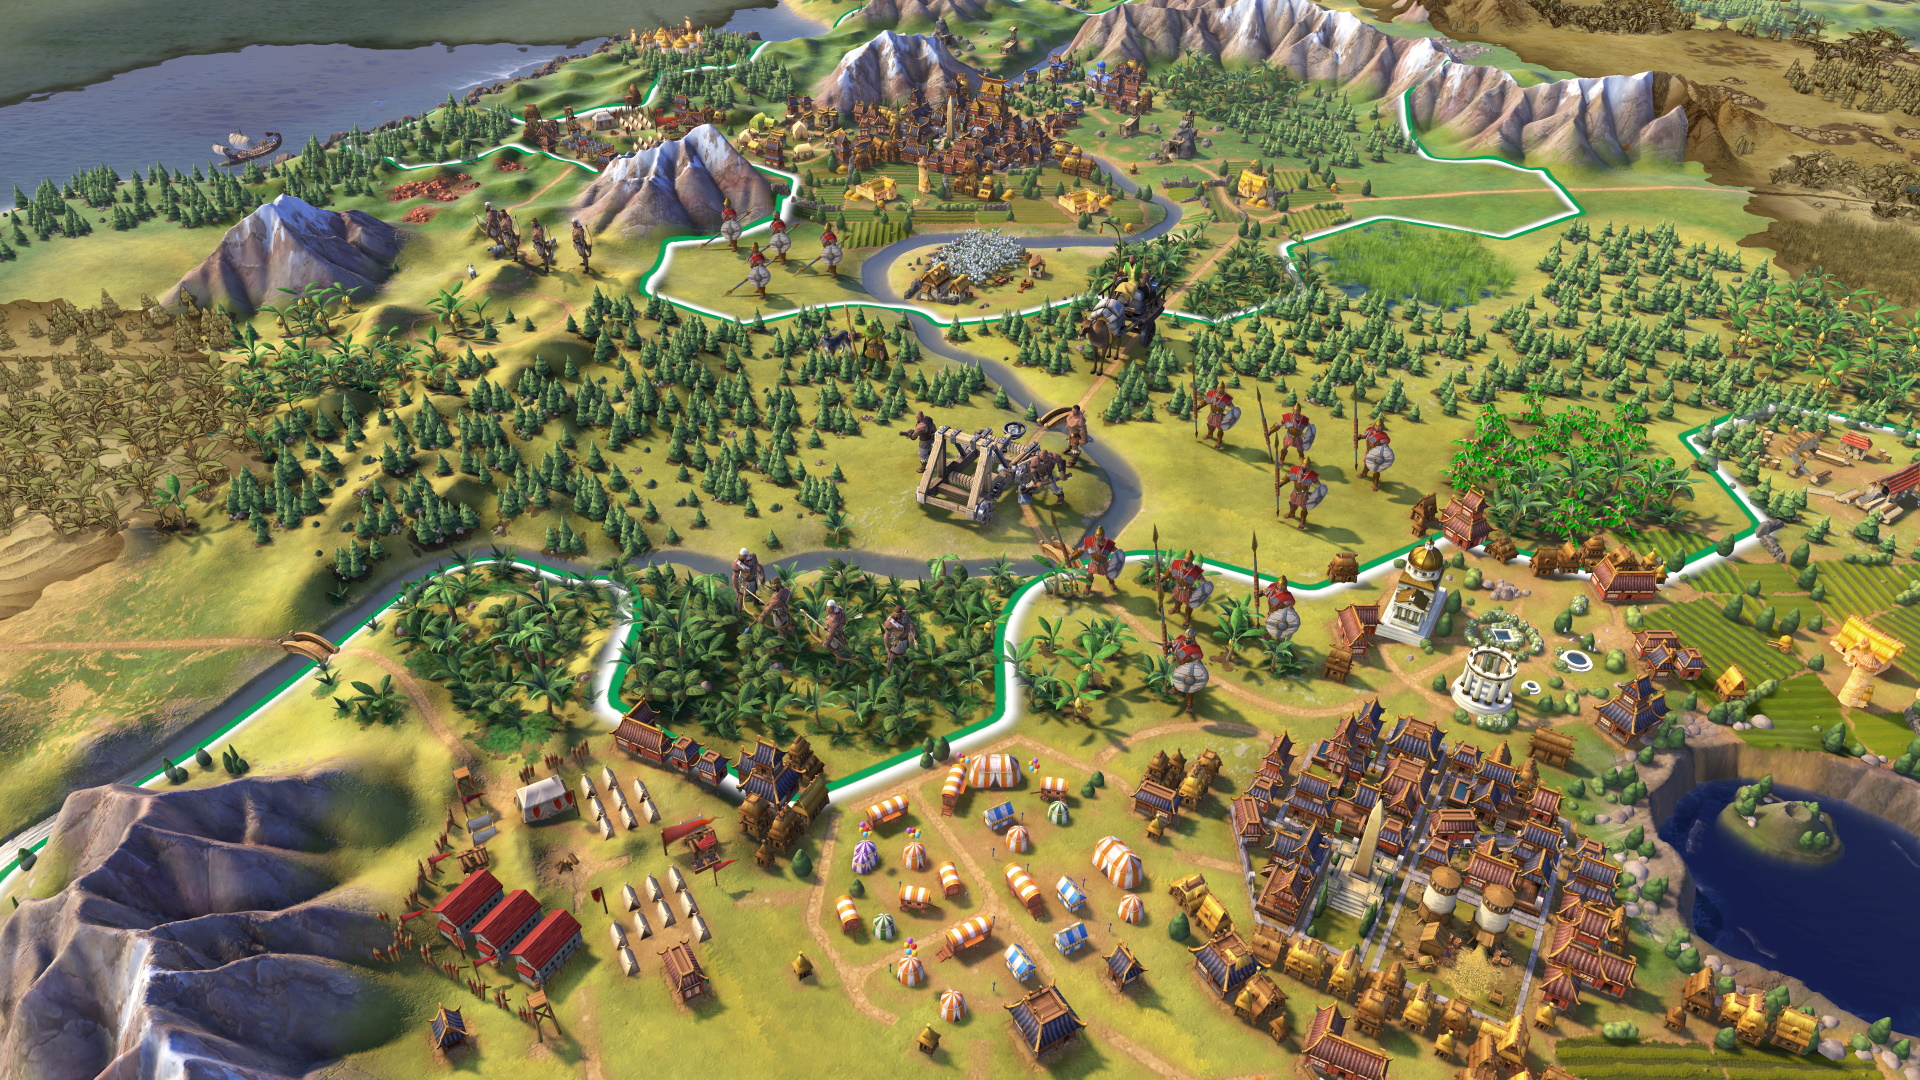 A screenshot of a built up civilization in Sid Meier's Civilization VI.